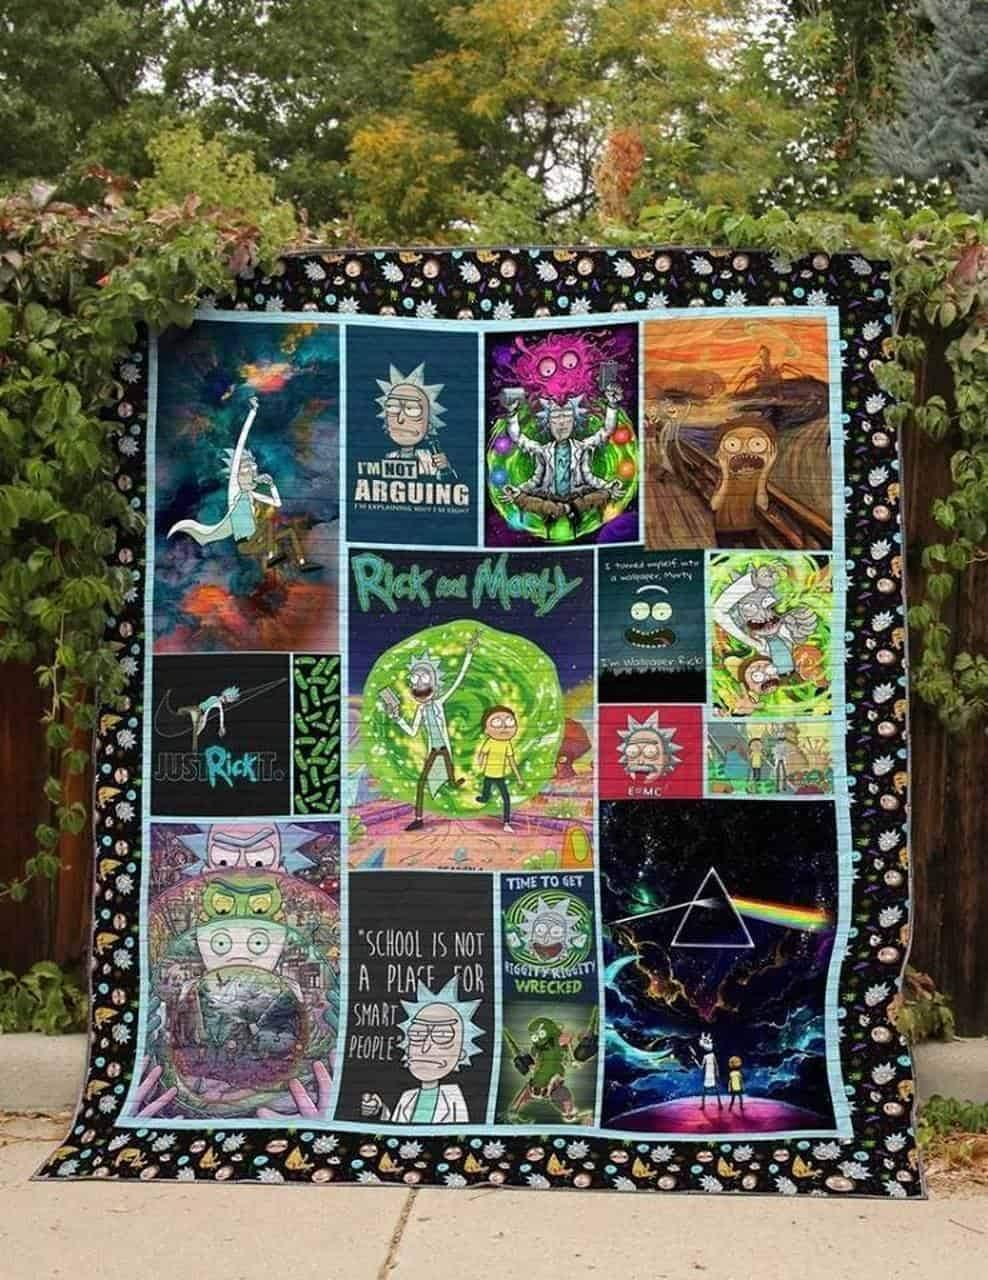 Rick and morty blanket - child